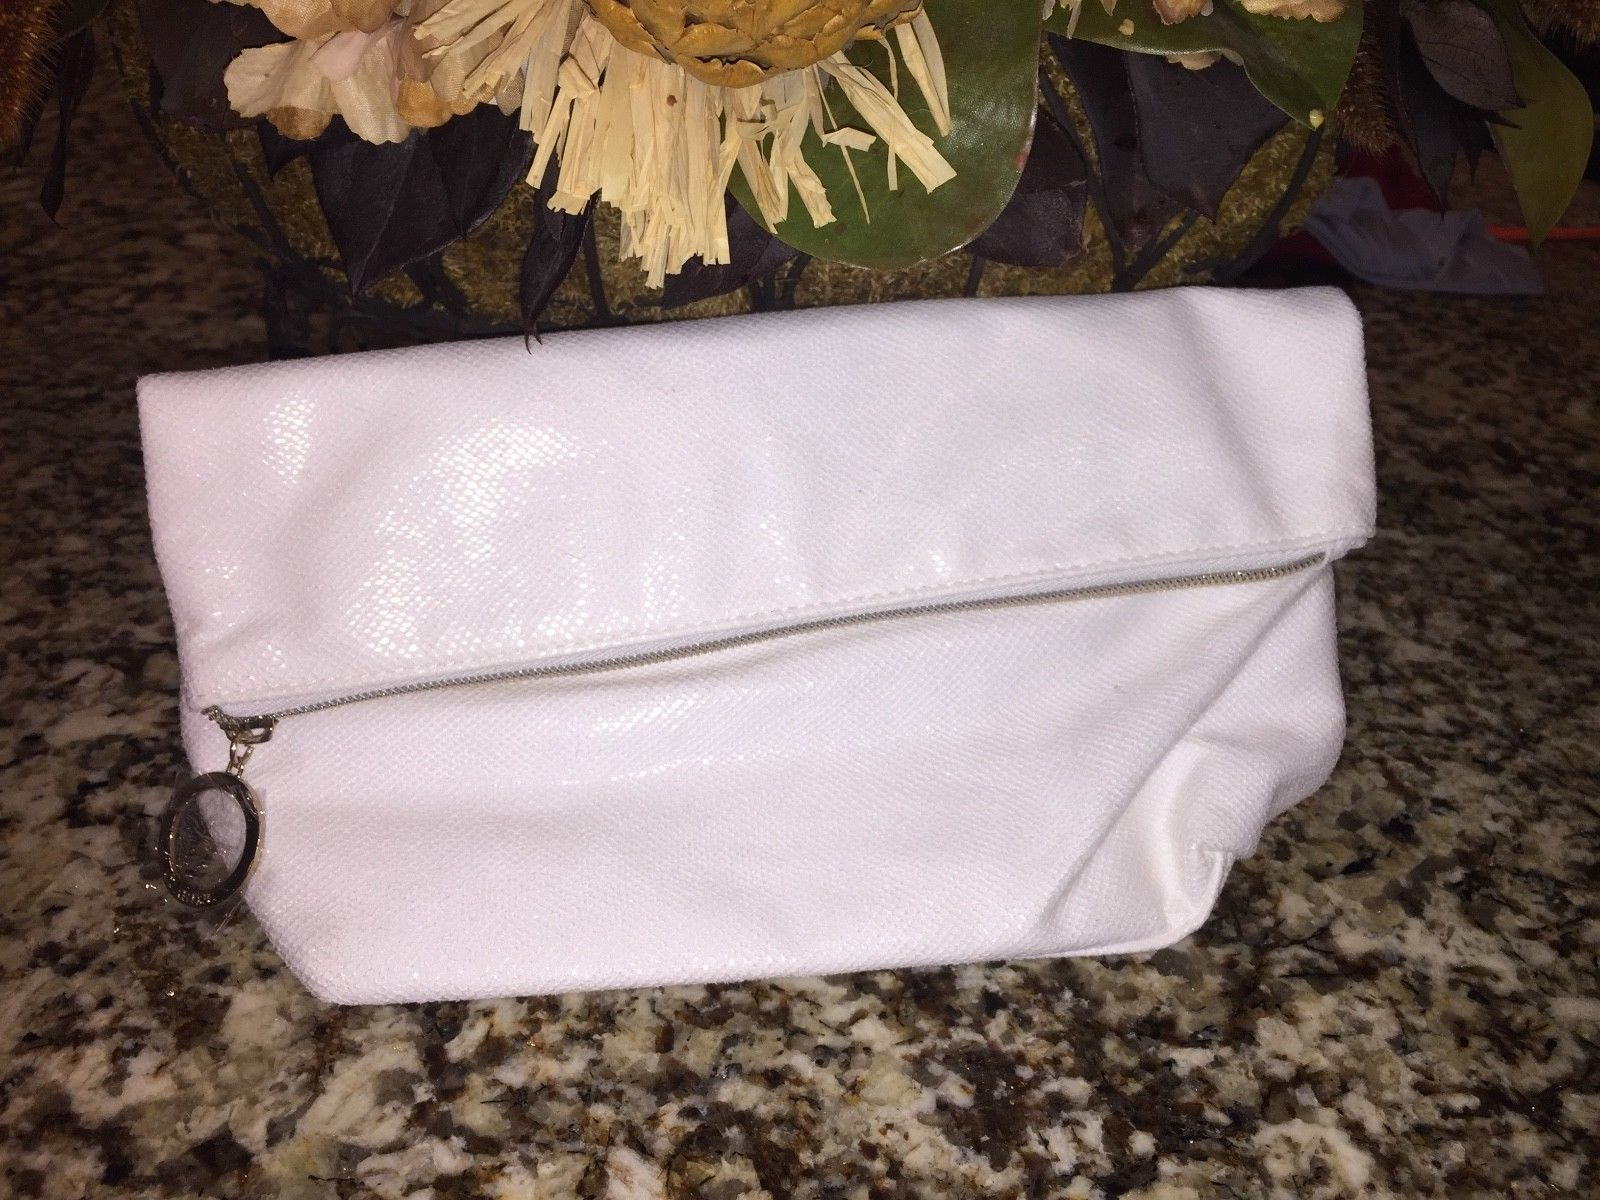 NEW SEALED WOMEN'S HANDBAG, WHITE TEXTURED CLUTCH BAG WITH GOLD KEYCHAIN